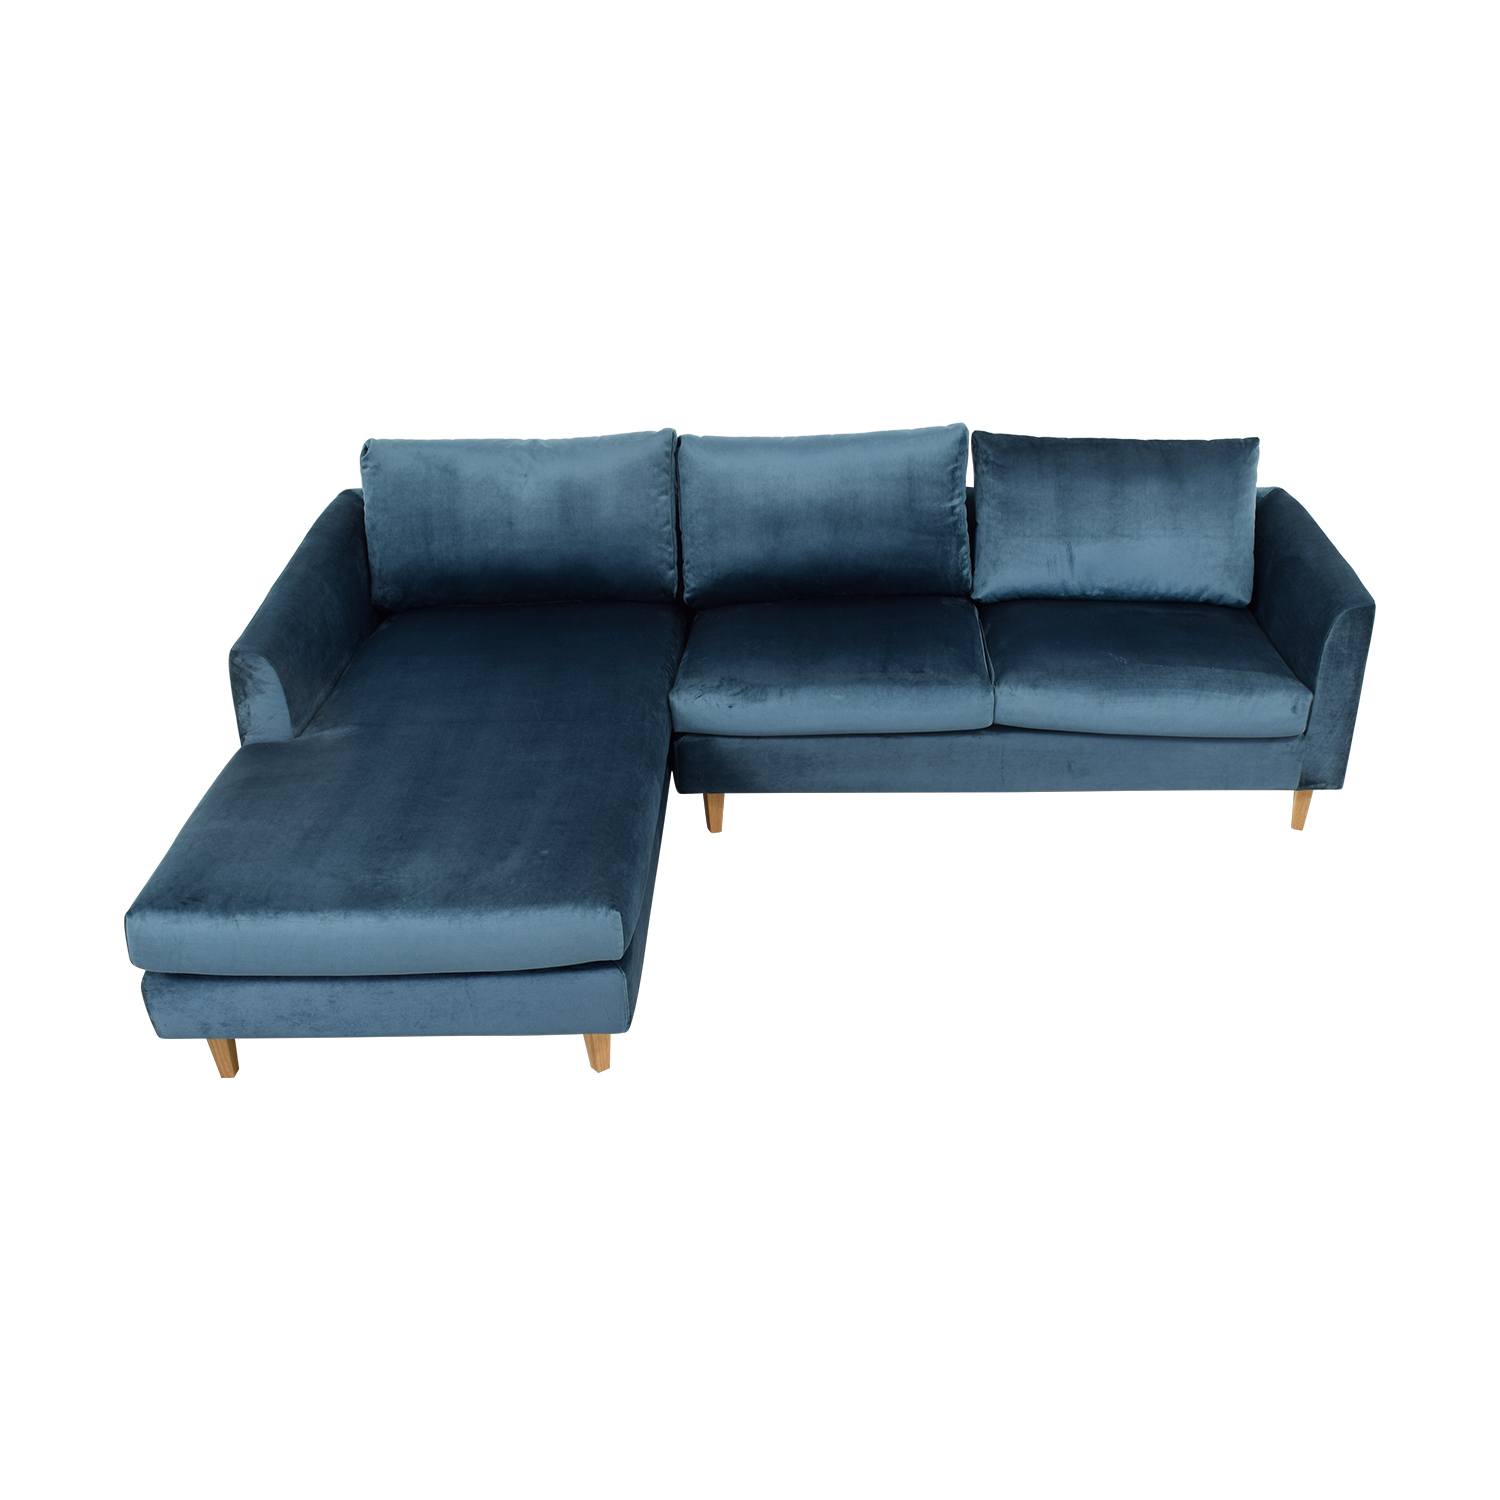 buy Owens Blue Left Chaise Sectional online